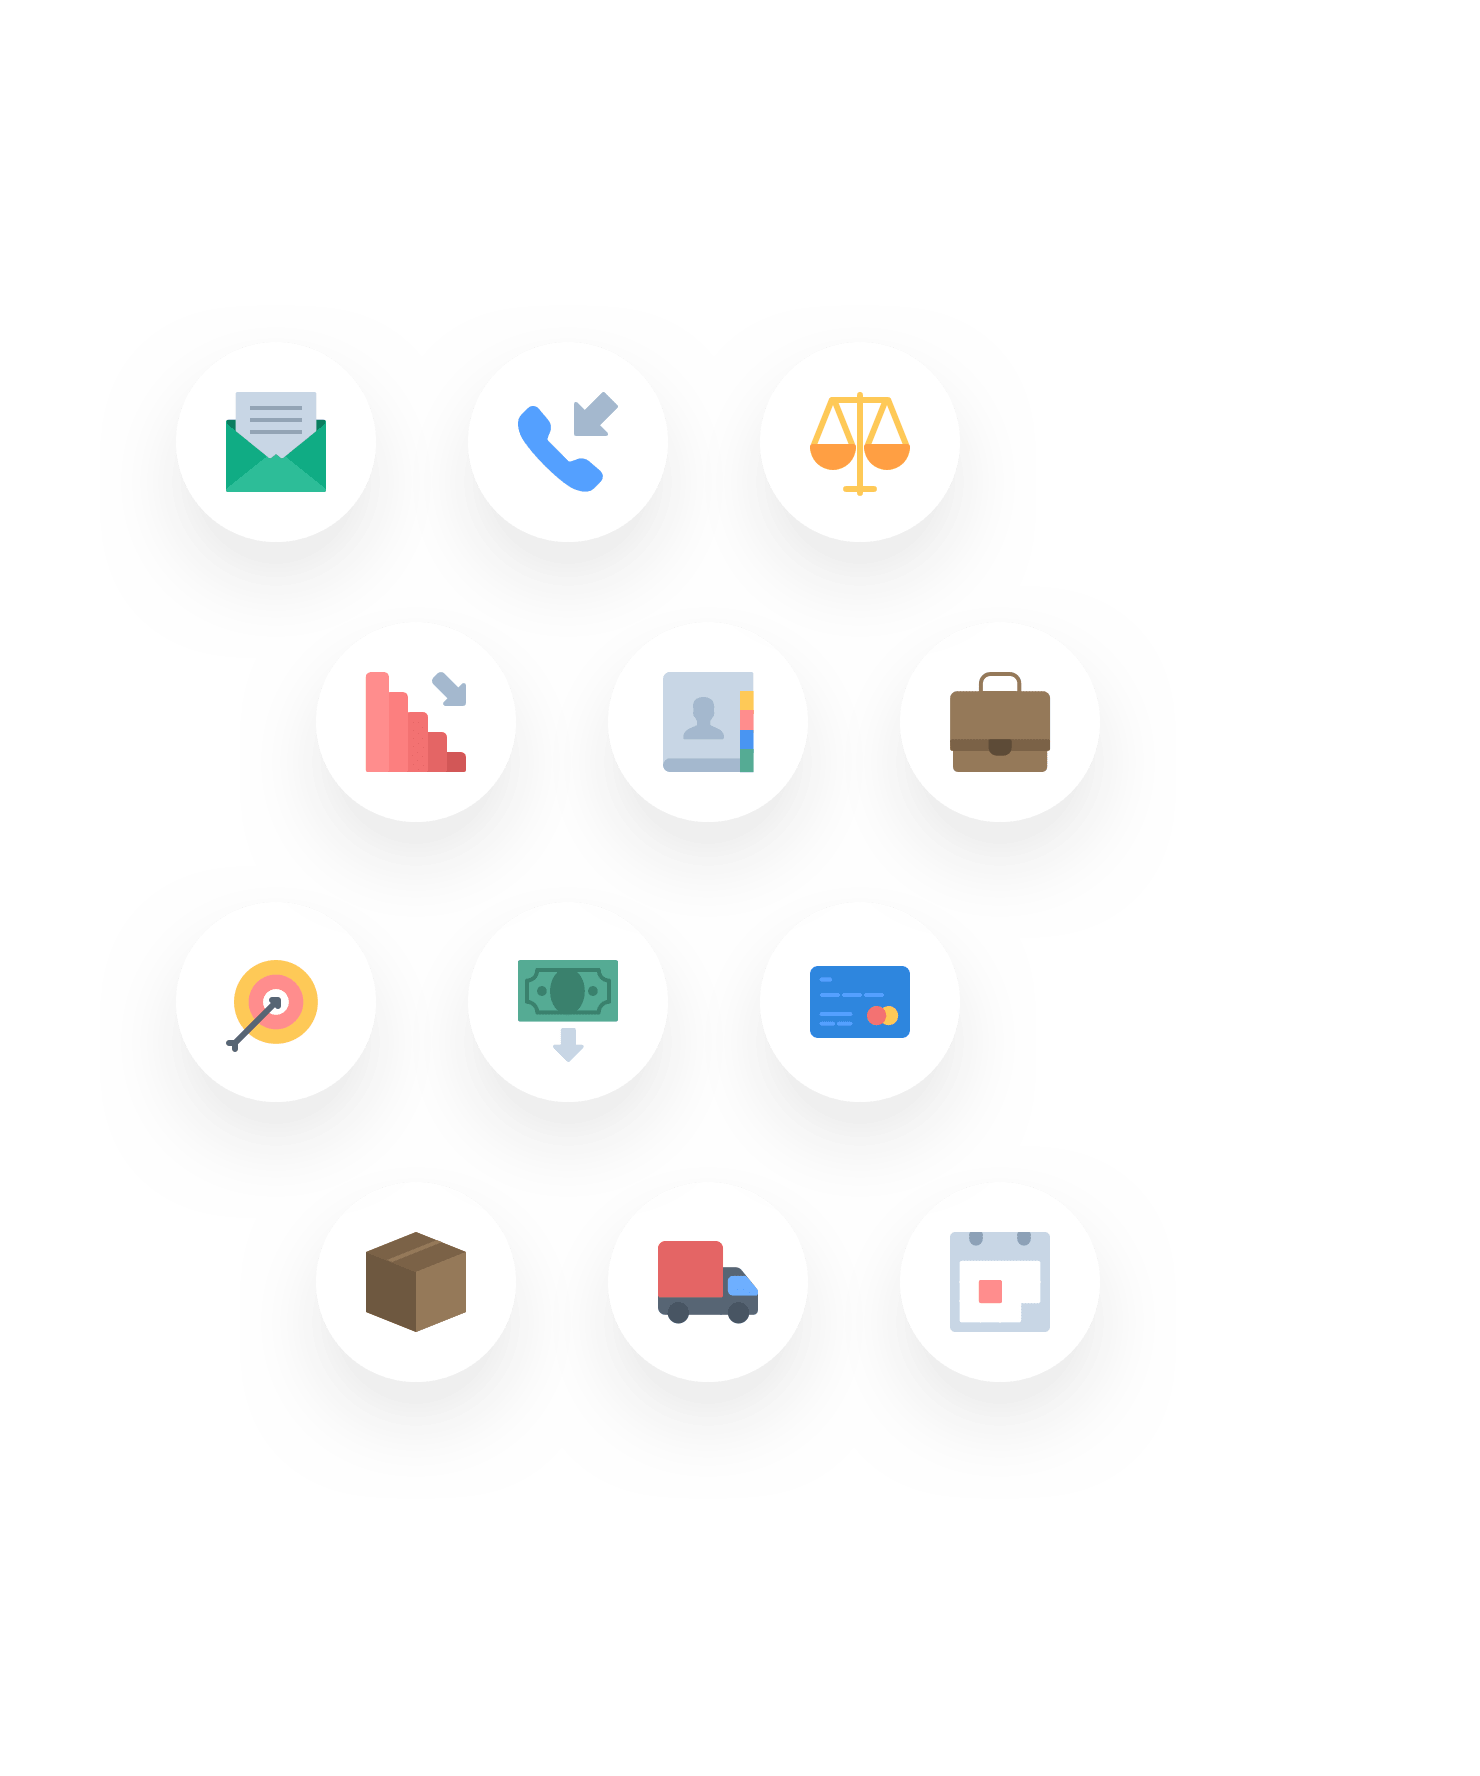 Essentials icon pack: The most-used icons in one place